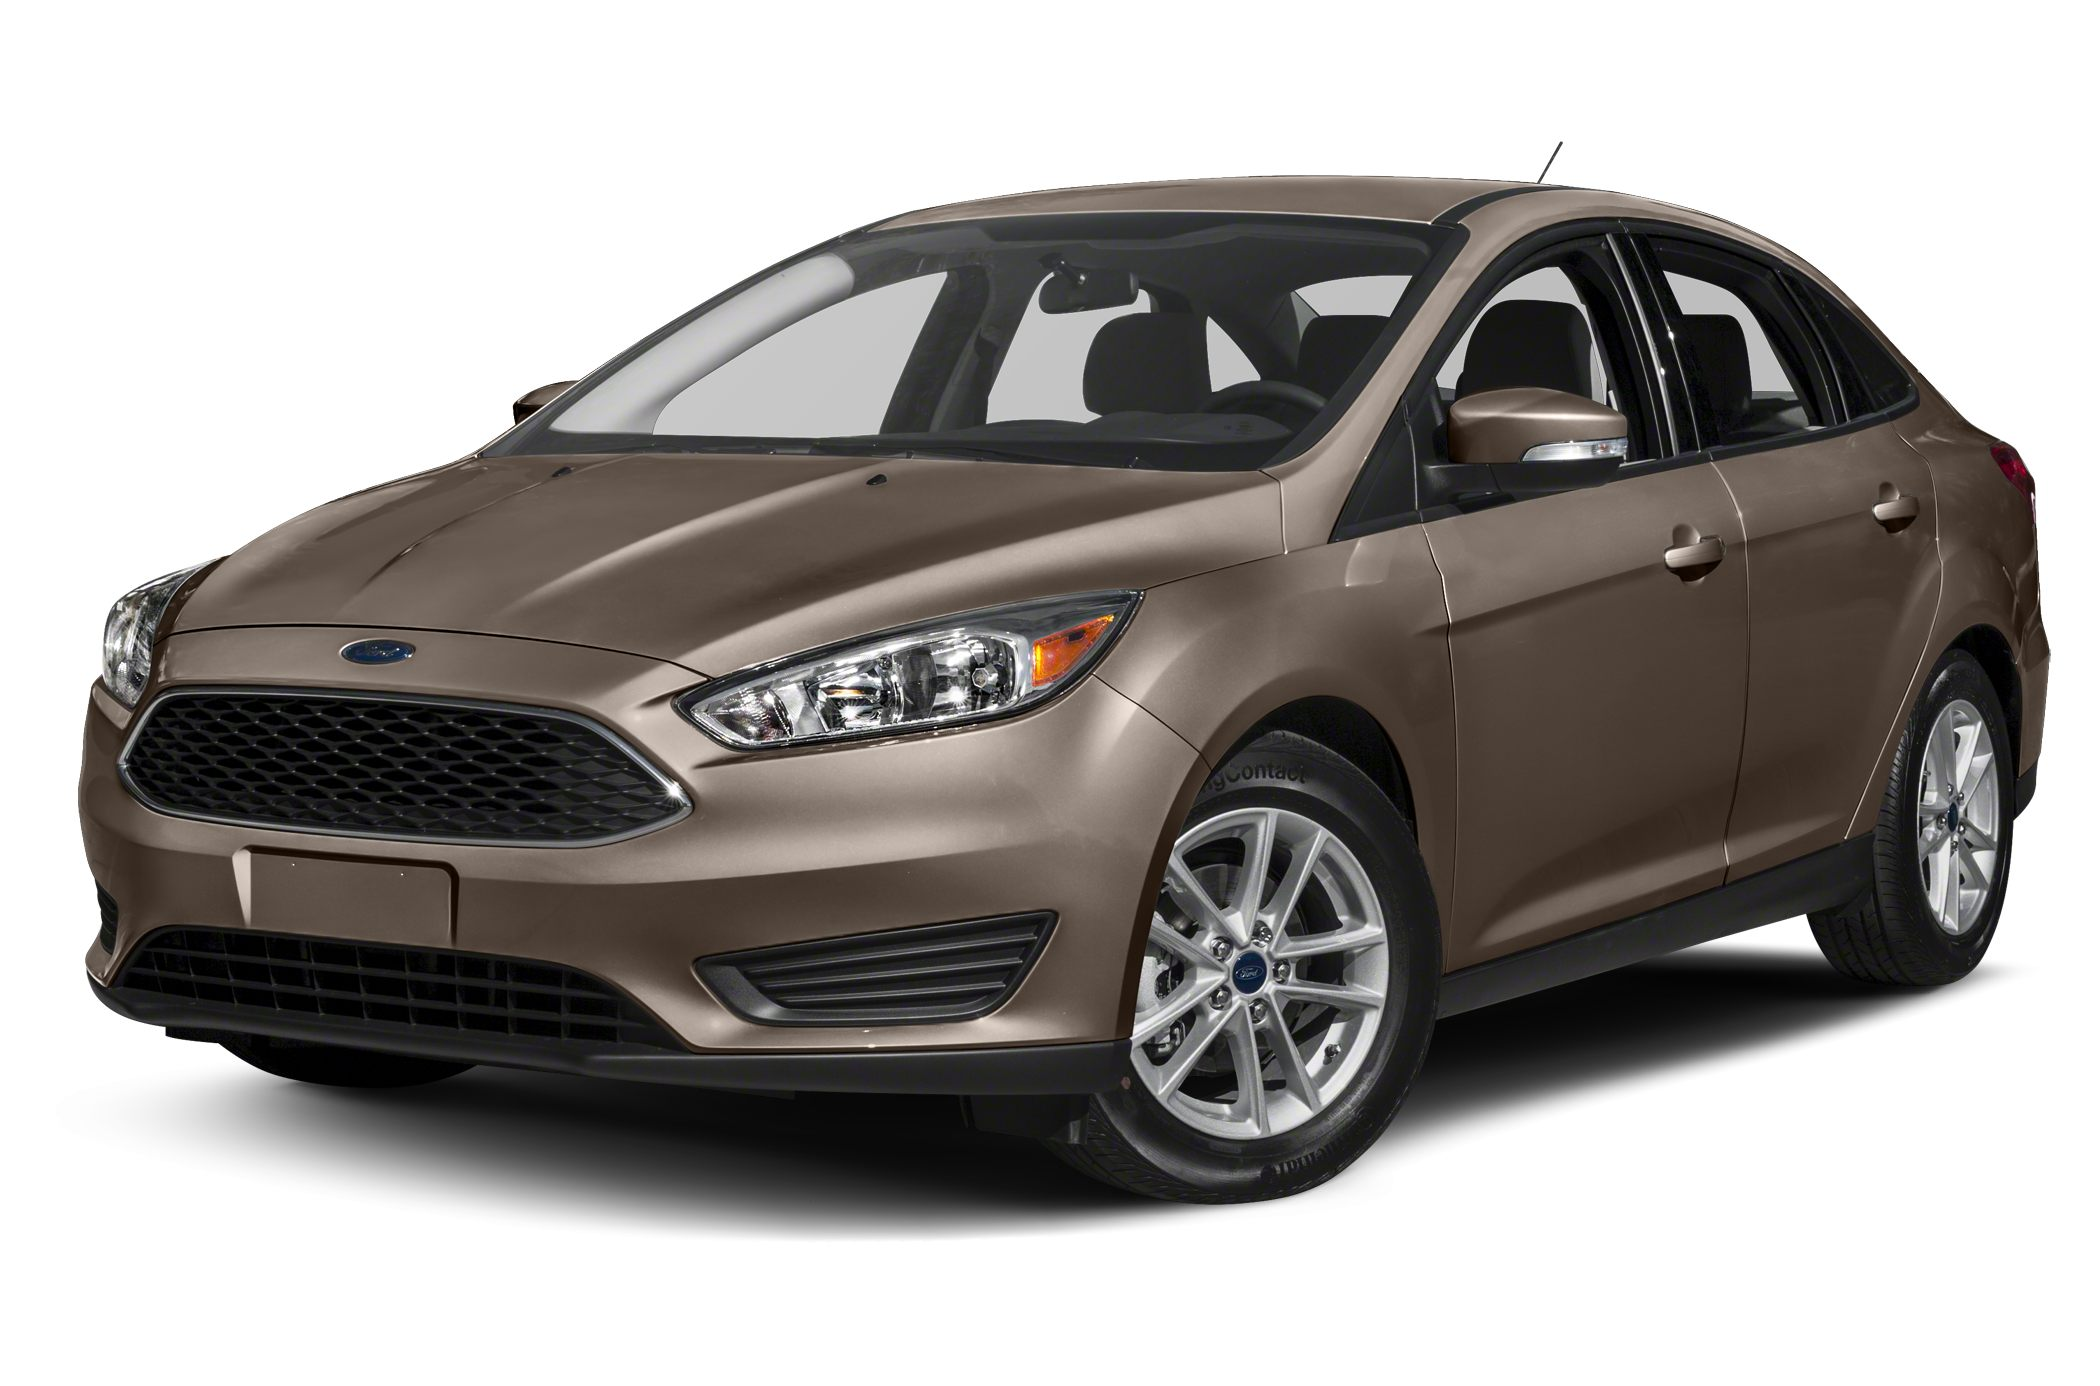 2018 Ford Focus SEL 2018 Ford Focus SEL 3424 HighwayCity MPG Price includes 2500 - Retail Cus